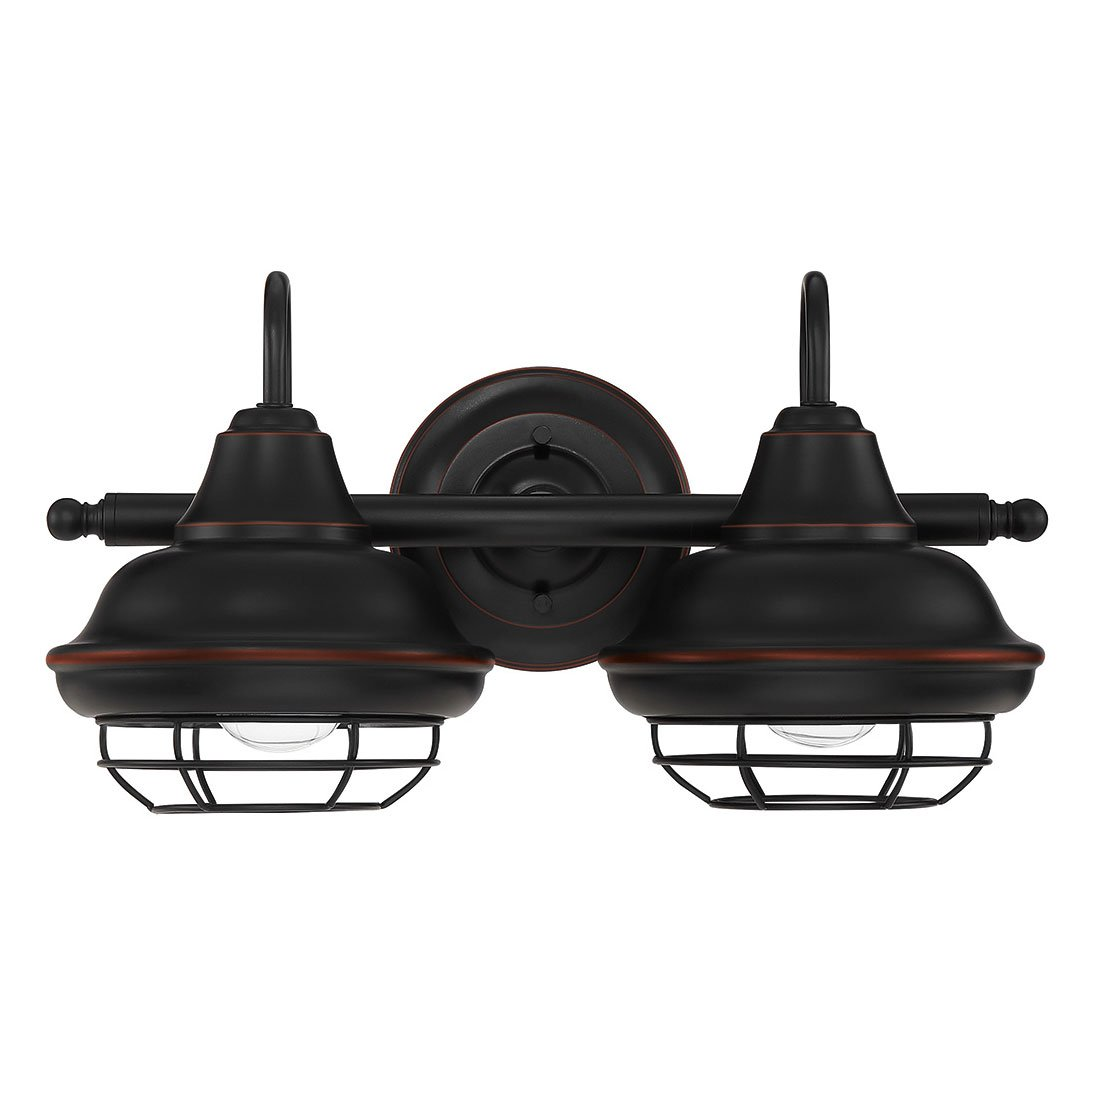 Designers Impressions Charleston Oil Rubbed Bronze 2 Light Wall Sconce/Bathroom Fixture: 10007